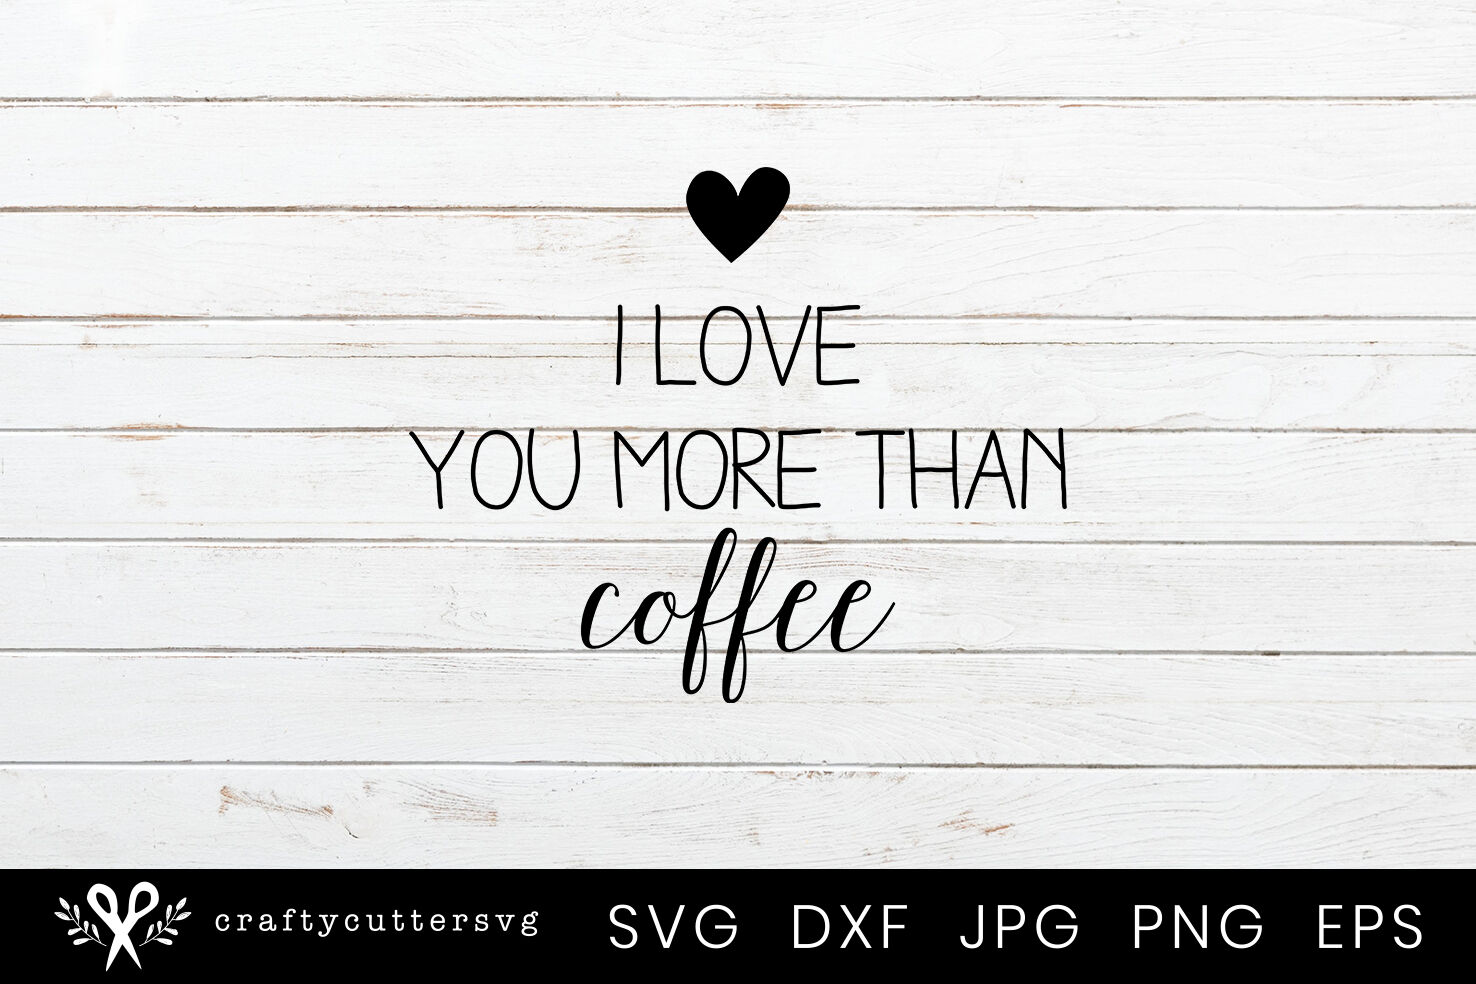 I Love You More Than Coffee Svg Valentine S Day Cutting File By